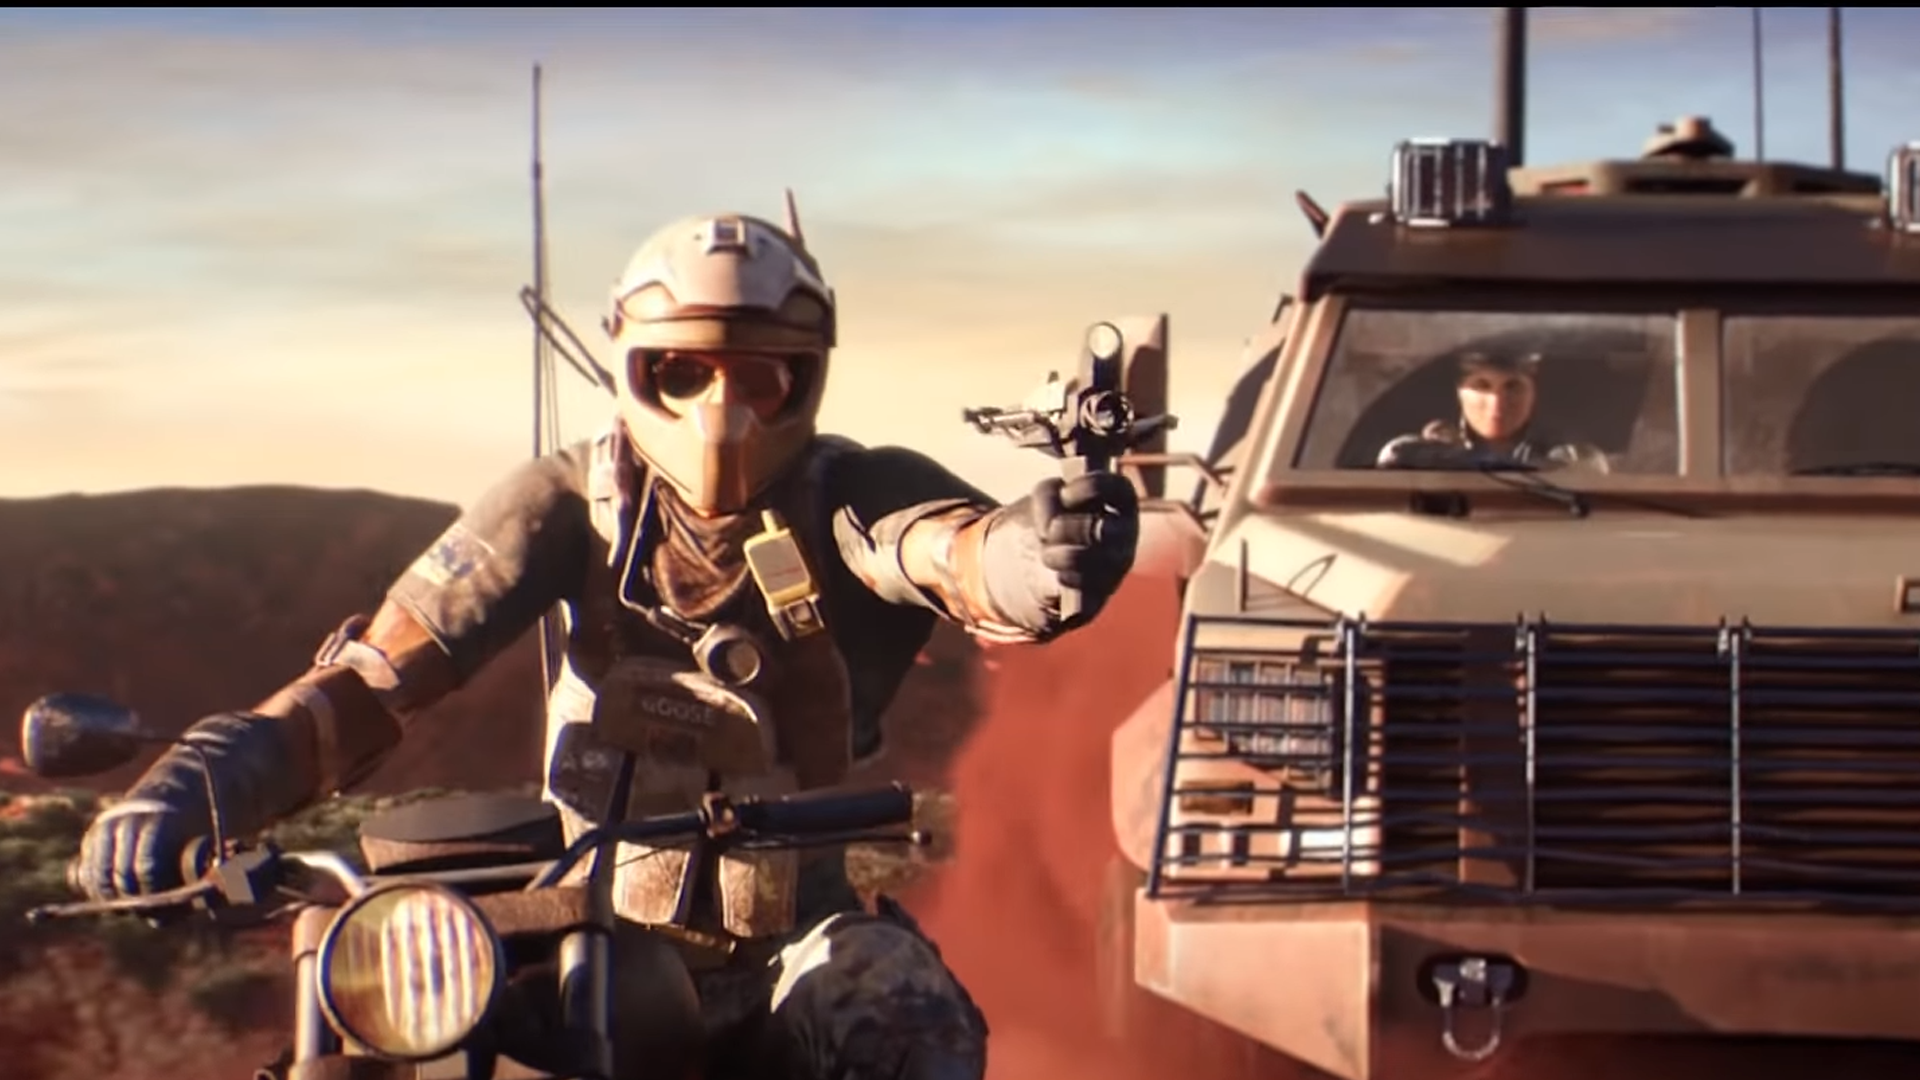 Rainbow Six Siege Year 4 Will Bring Big Changes, Including Reworked Friendly Fire System